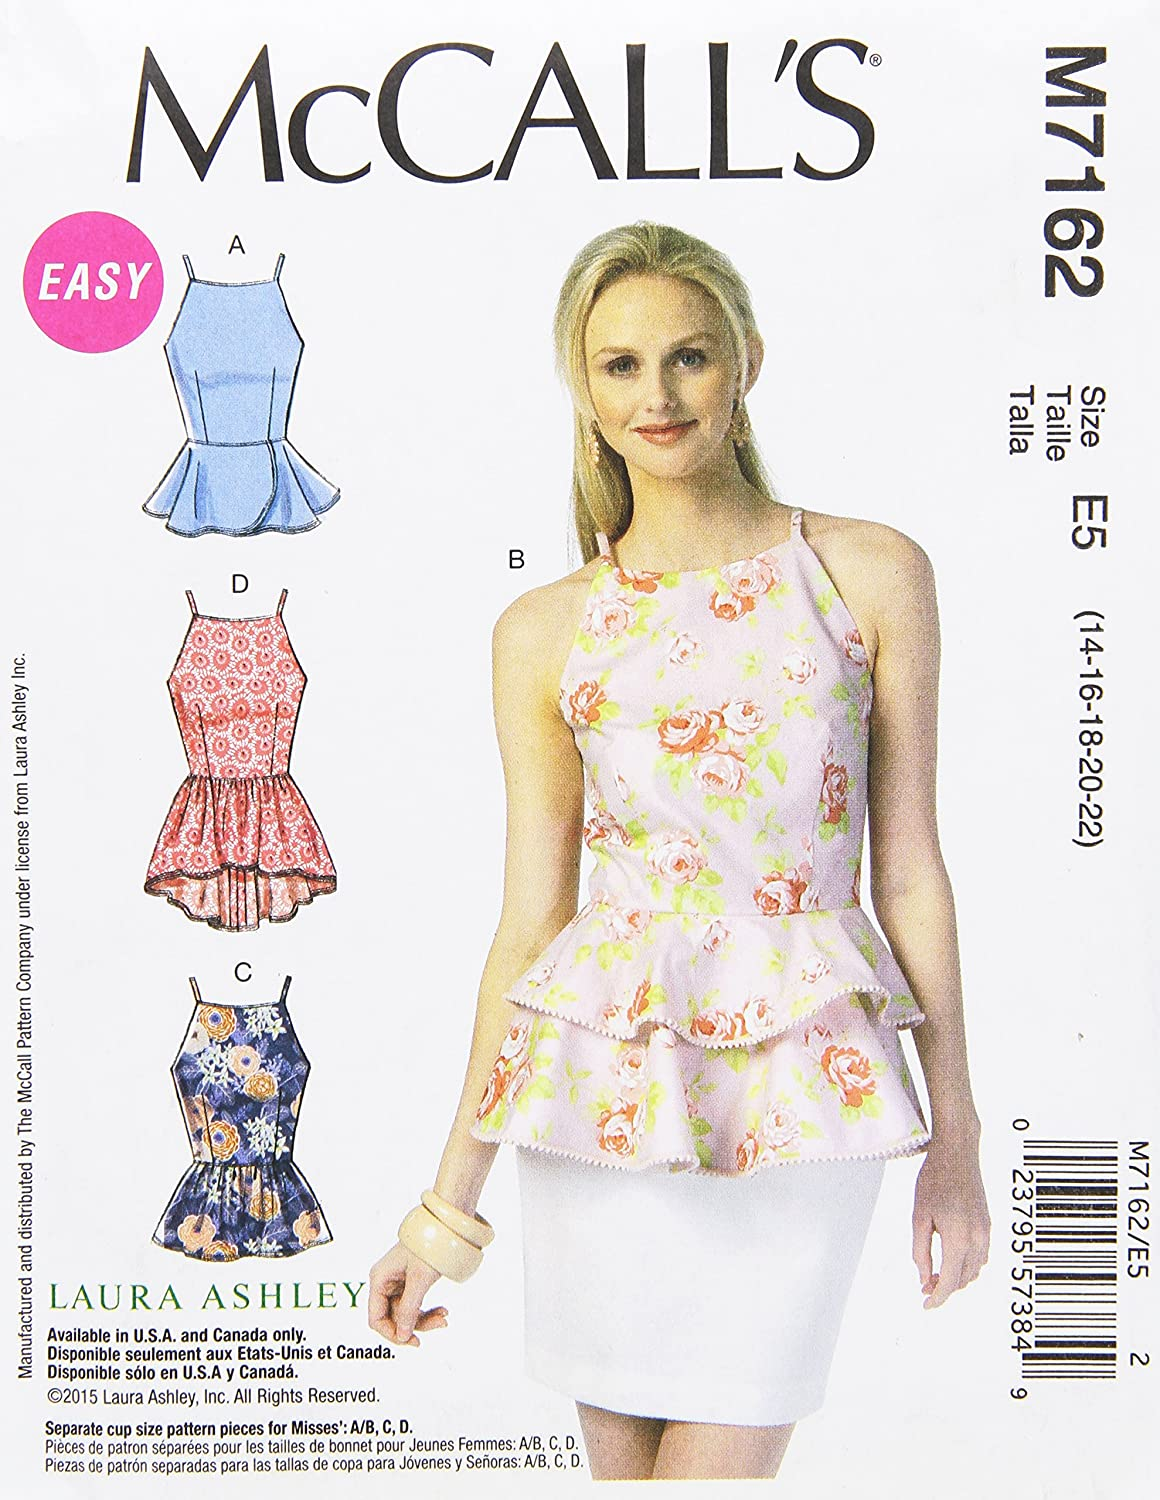 Amazon.com: McCall\'s Patterns M7162 Misses\' Tops Sewing Template, E5 ...